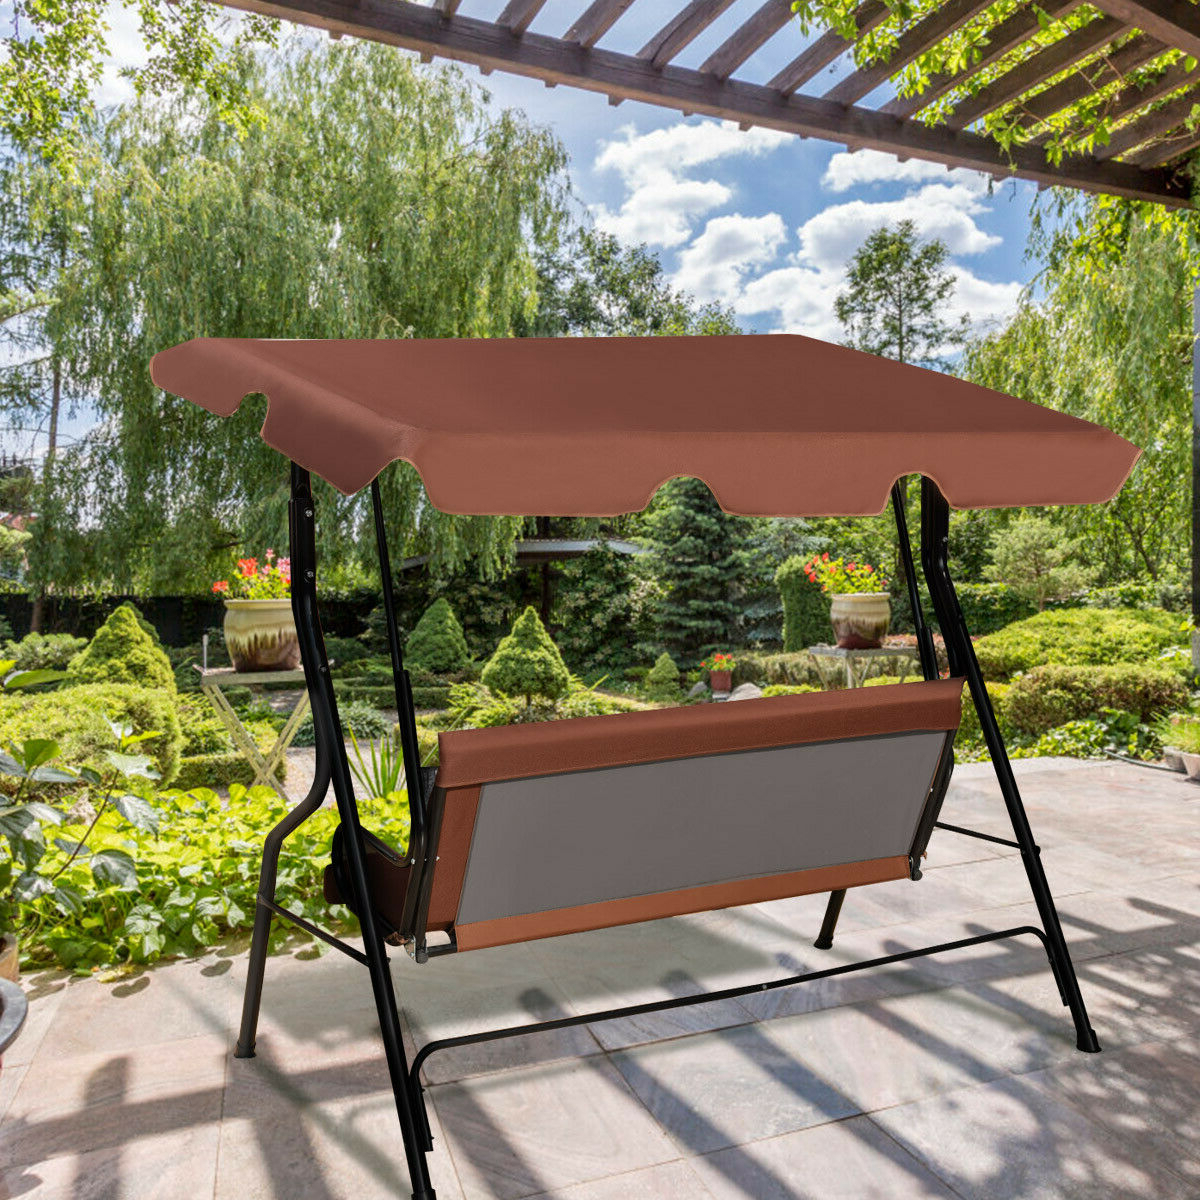 Costway 3 Seats Patio Canopy Swing Glider Hammock Cushioned Steel Frame Backyar Coffee Intended For 2020 3 Seats Patio Canopy Swing Gliders Hammock Cushioned Steel Frame (View 5 of 25)